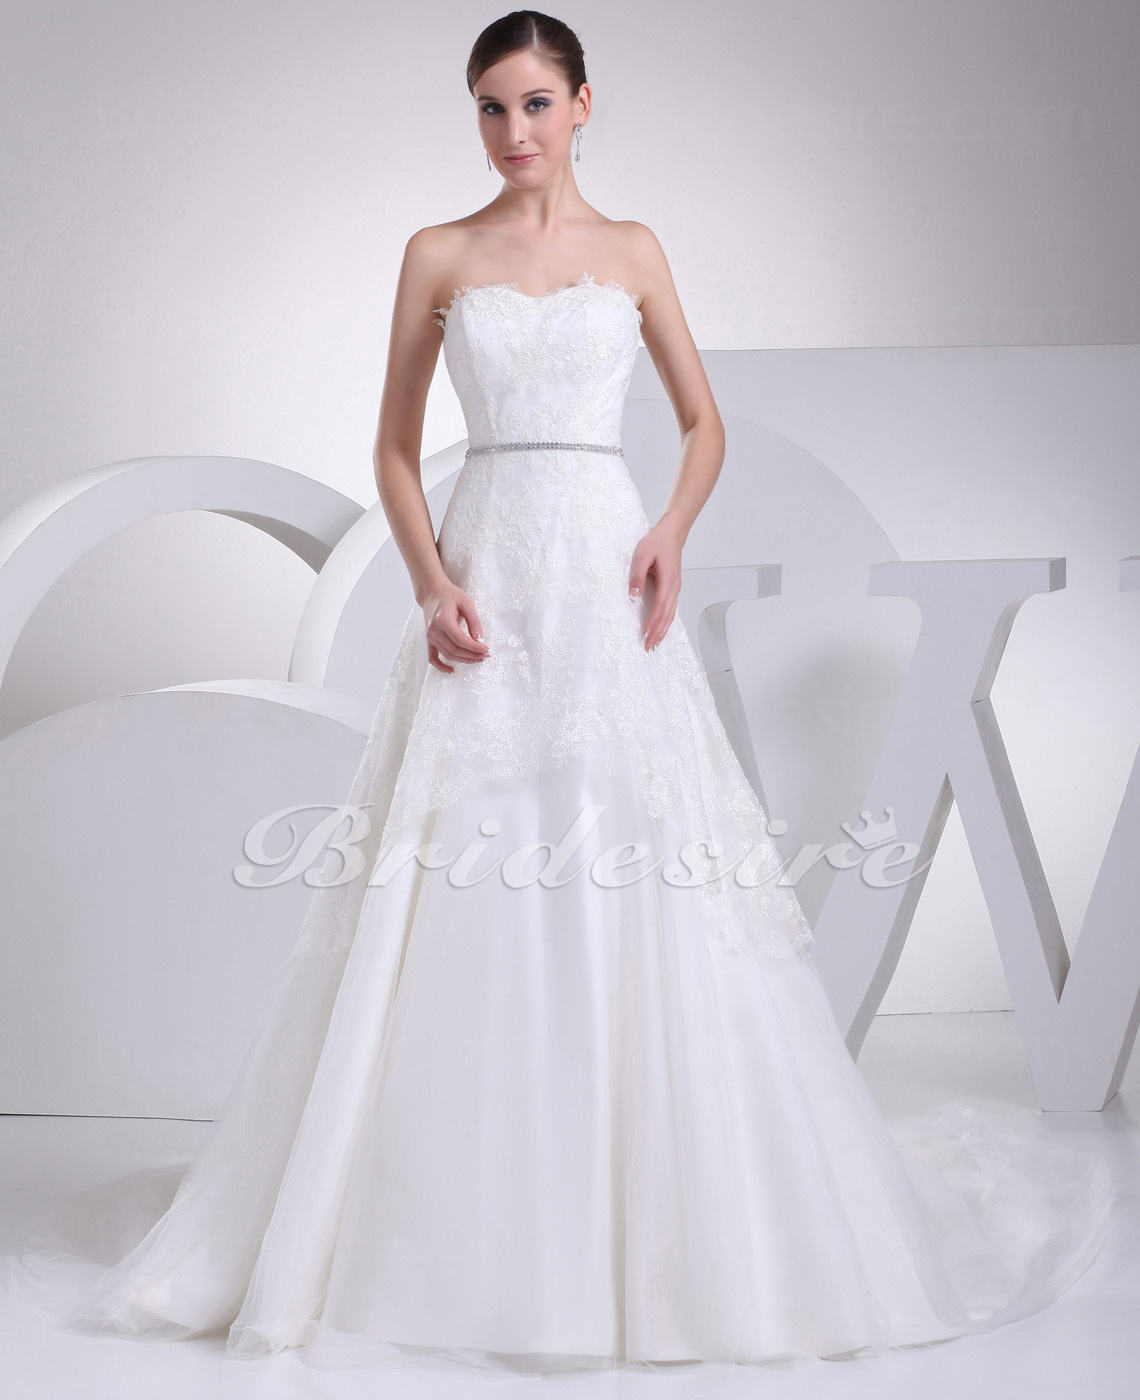 A-line Strapless Court Train Sleeveless Lace Wedding Dress